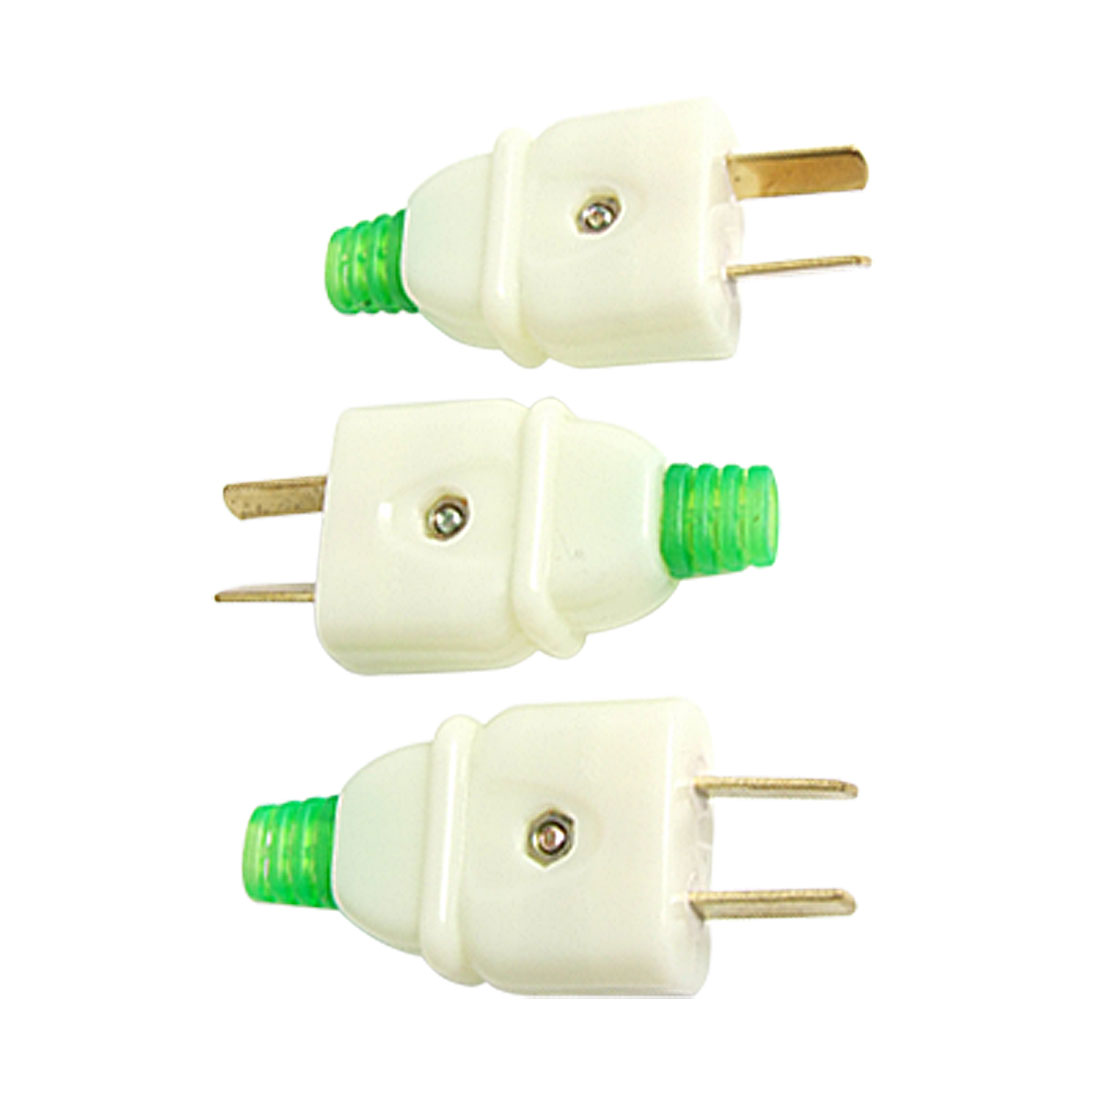 3 x Off White Plastic Shell 2 Pin Power Cable Connector US AU Plug AC 250V 16A